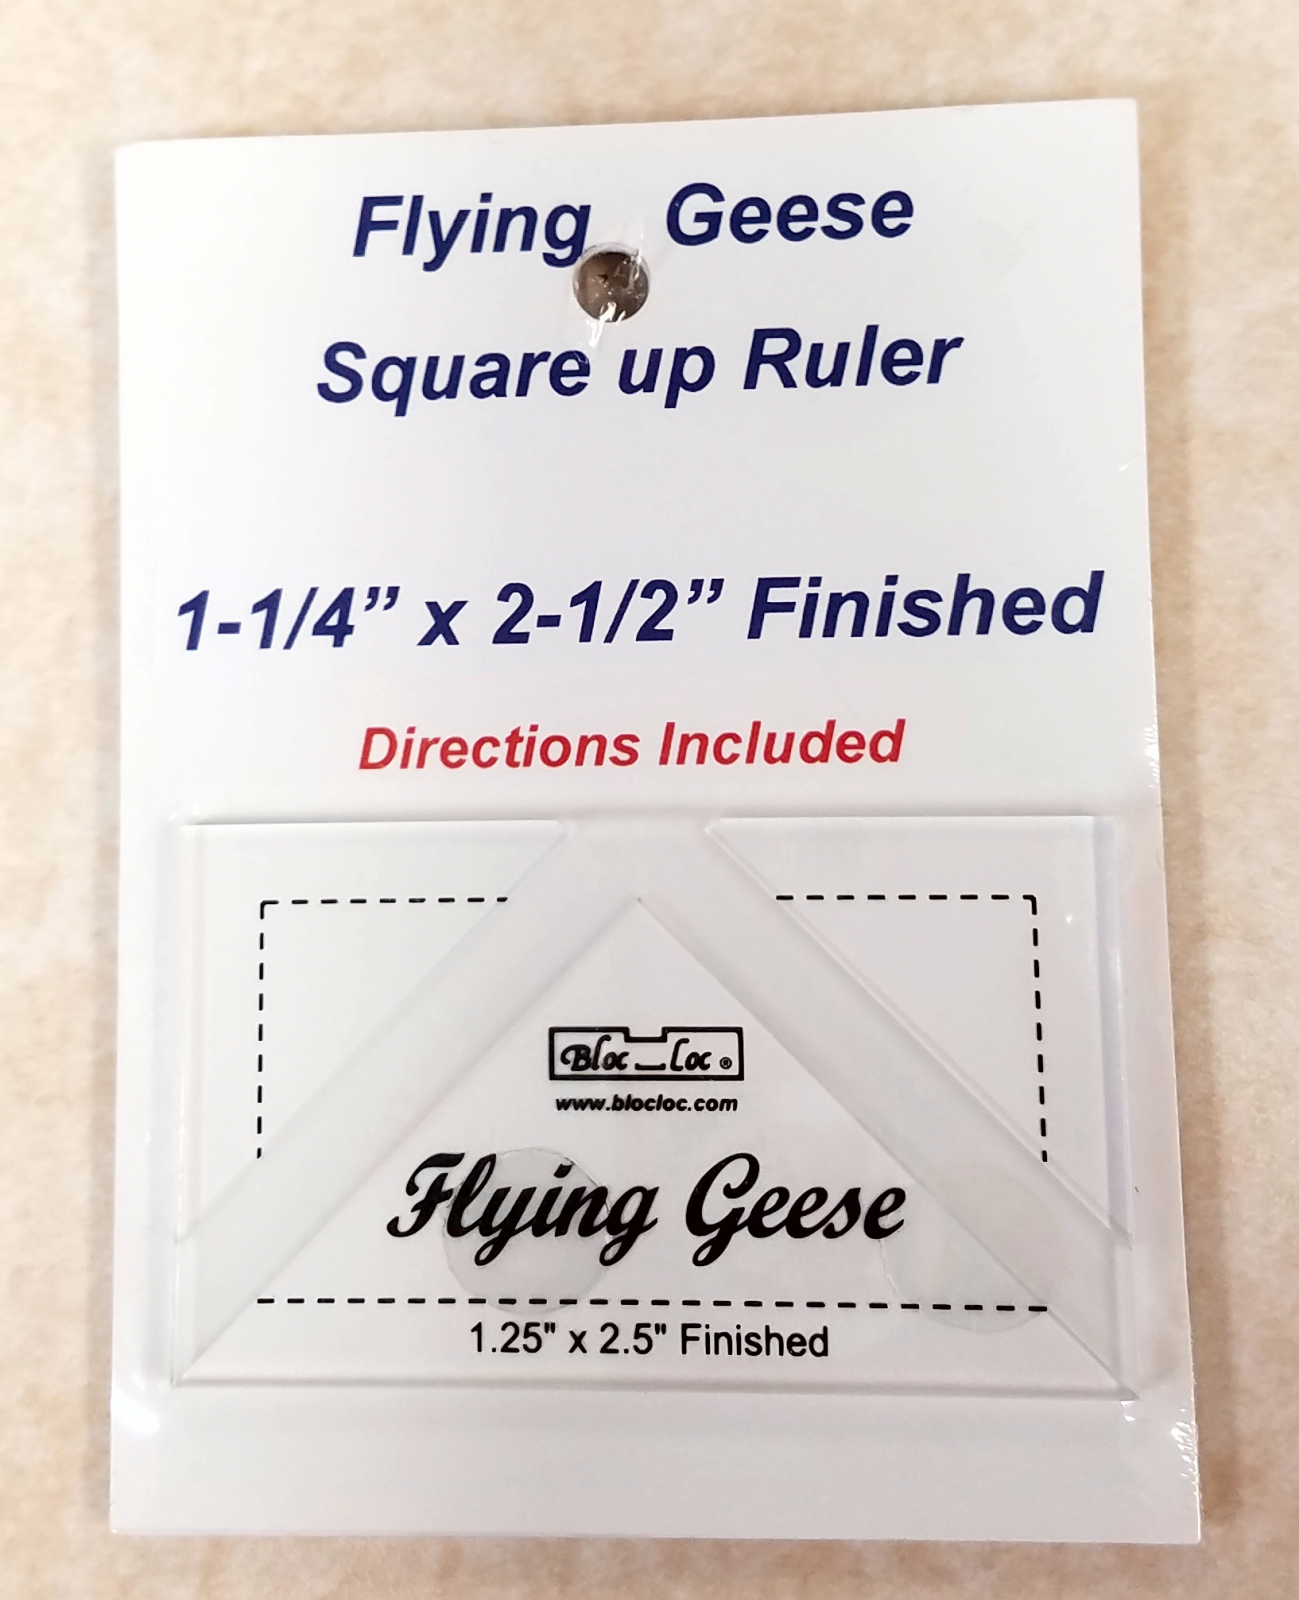 Bloc Loc Flying Geese Square up Ruler 1-1/4 x 2-1/2